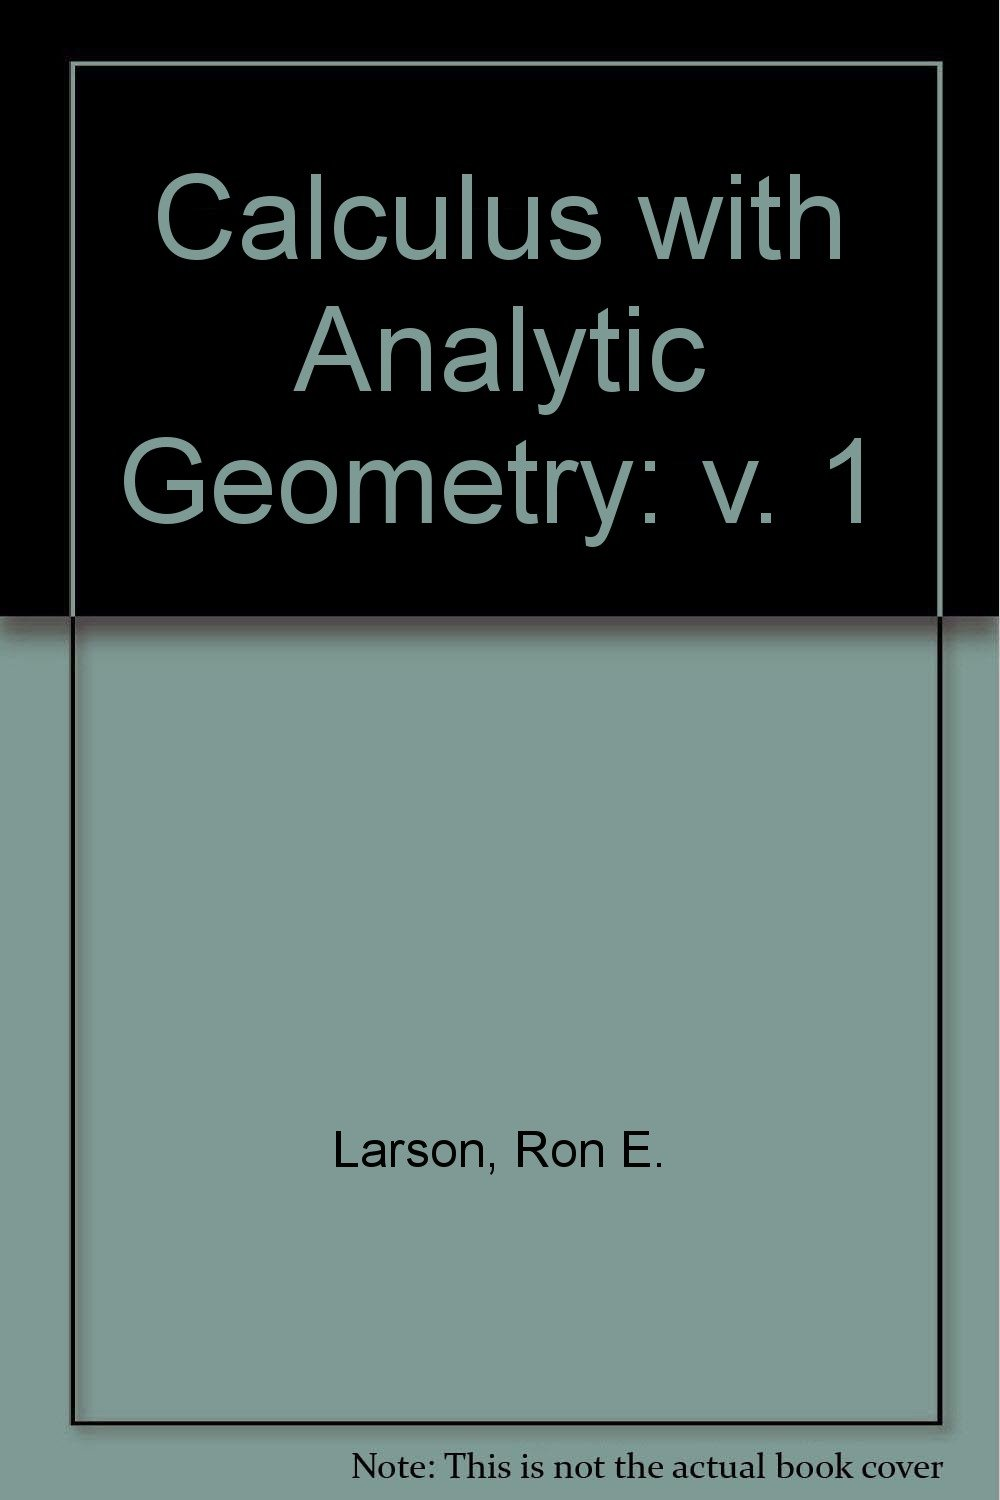 Calculus with Analytic Geometry: v. 1: Roland E, etc. Larson:  9780669178456: Amazon.com: Books